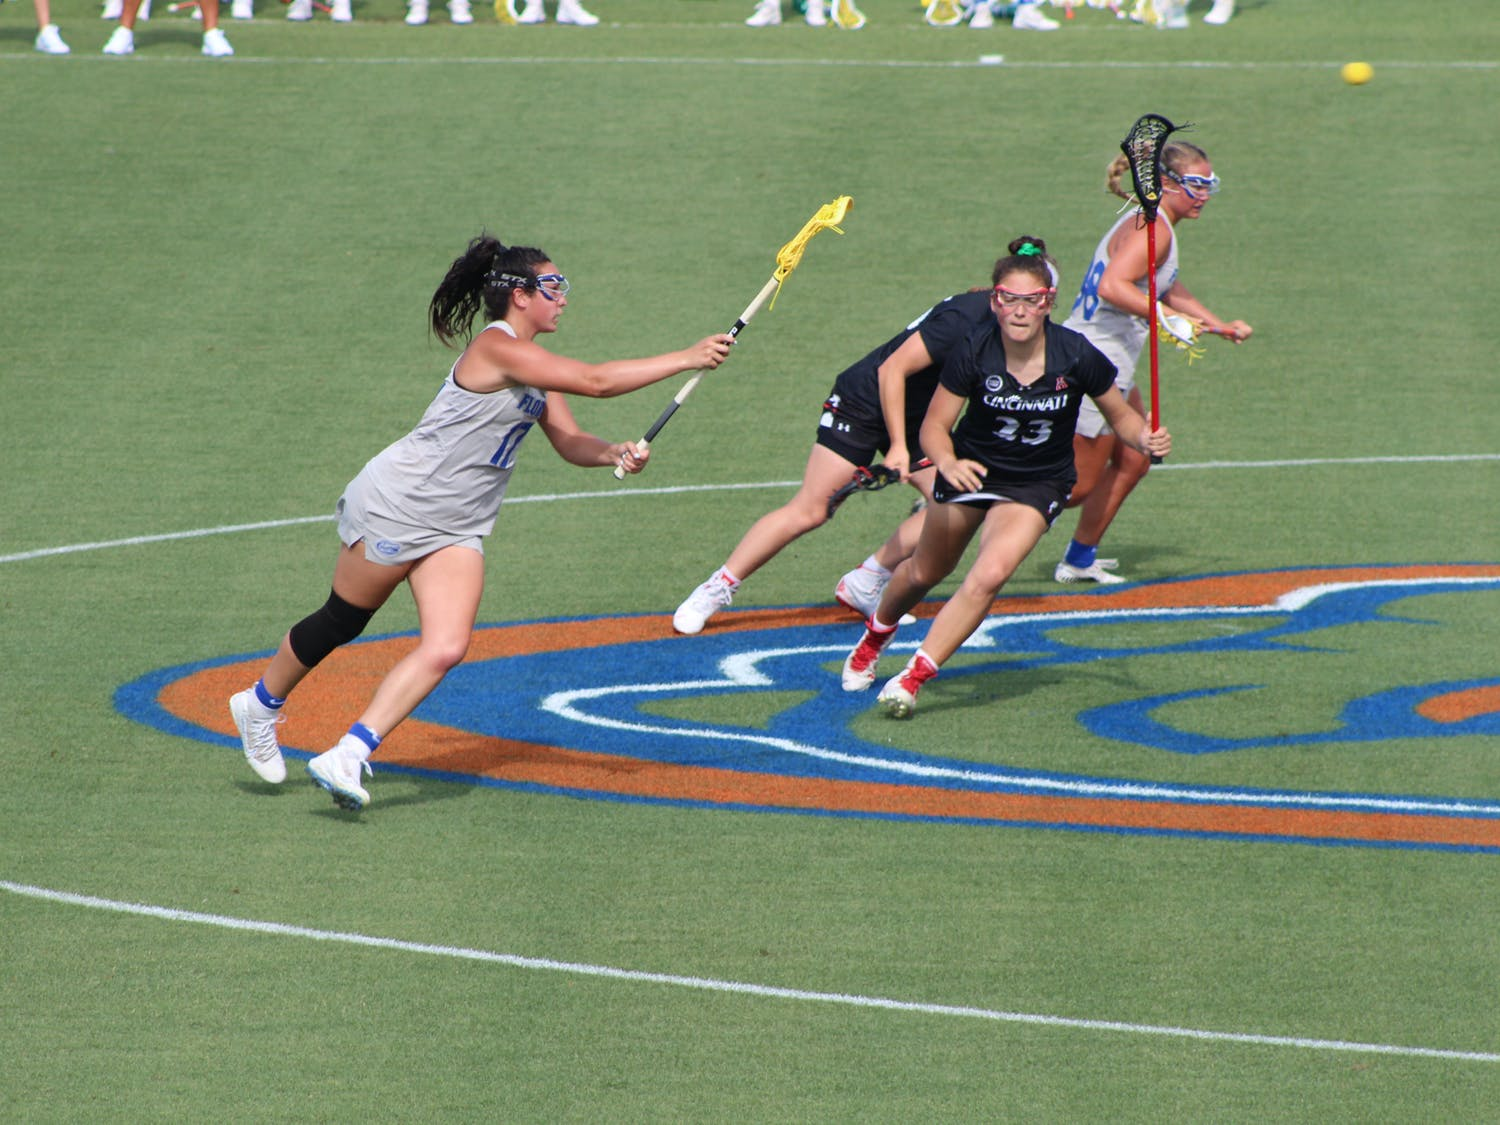 2021 AAC Midfielder of the Year Shannon Kavanagh, pictured in grey, passes down the field against Cincinnati in the conference semifinal on May 6. Kavanagh scored her 200th goal during the game.